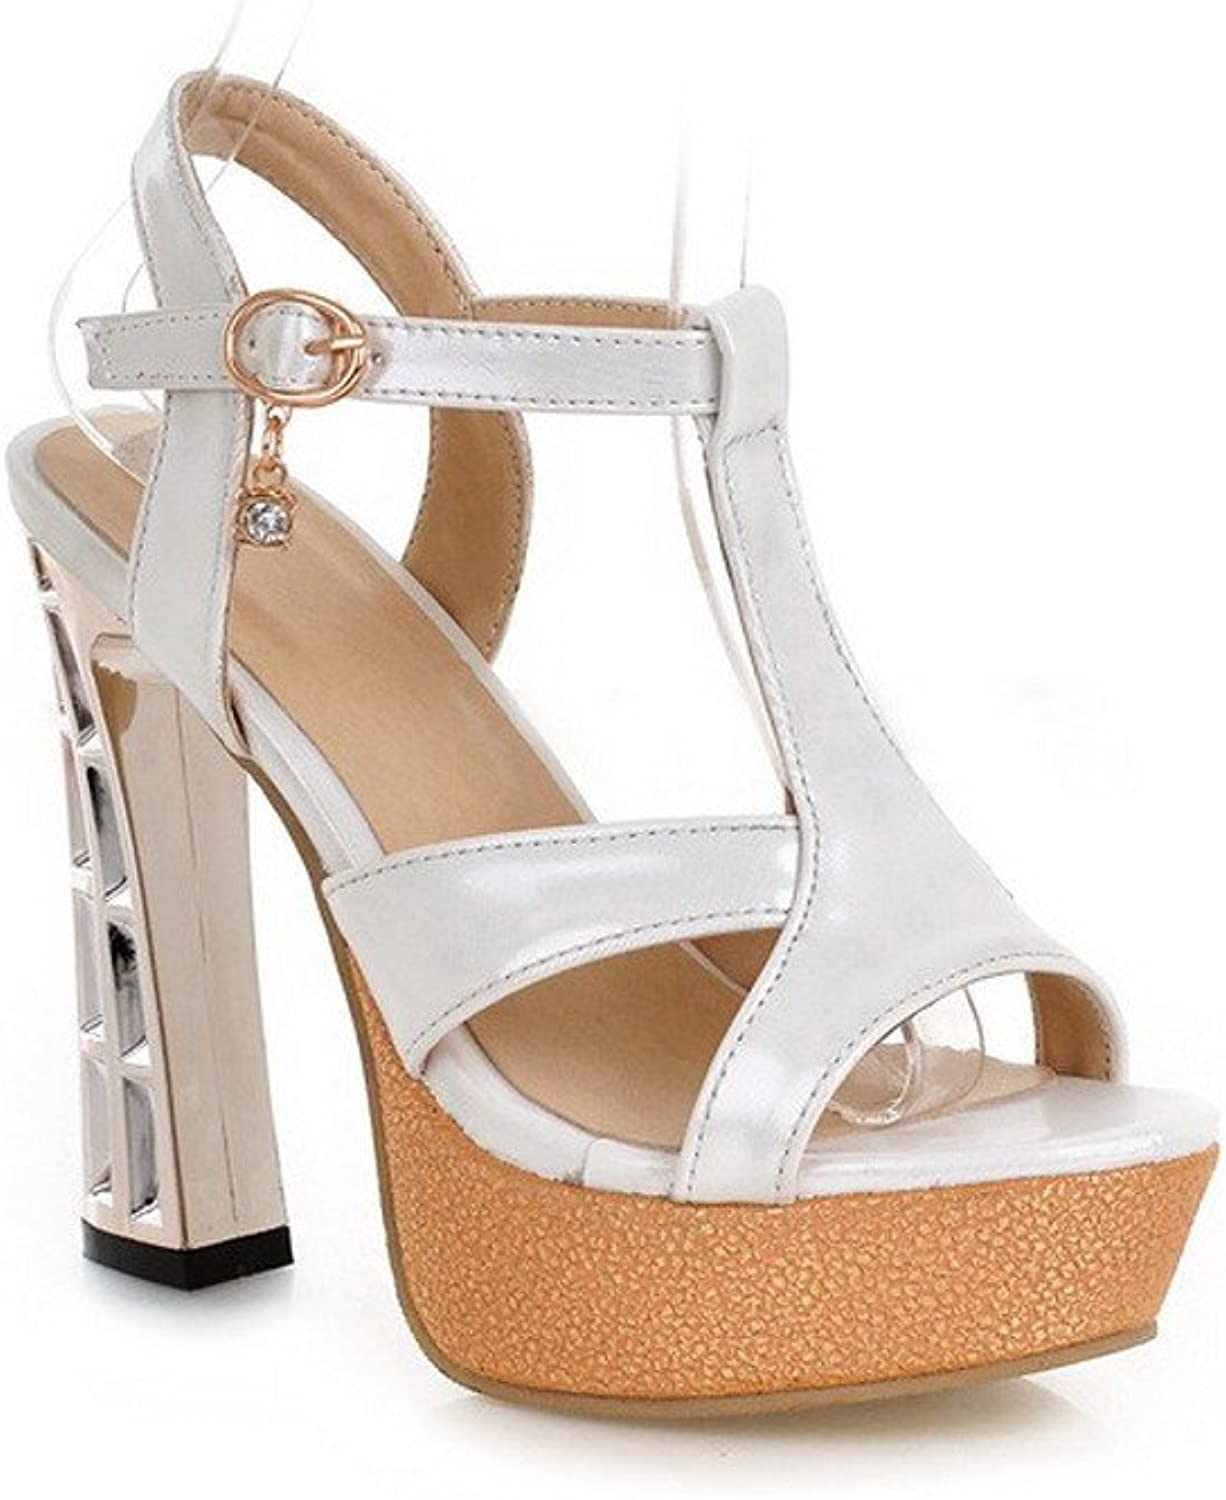 WeenFashion Women's Soft Material Buckle Open Toe High Heels Assorted color Sandals